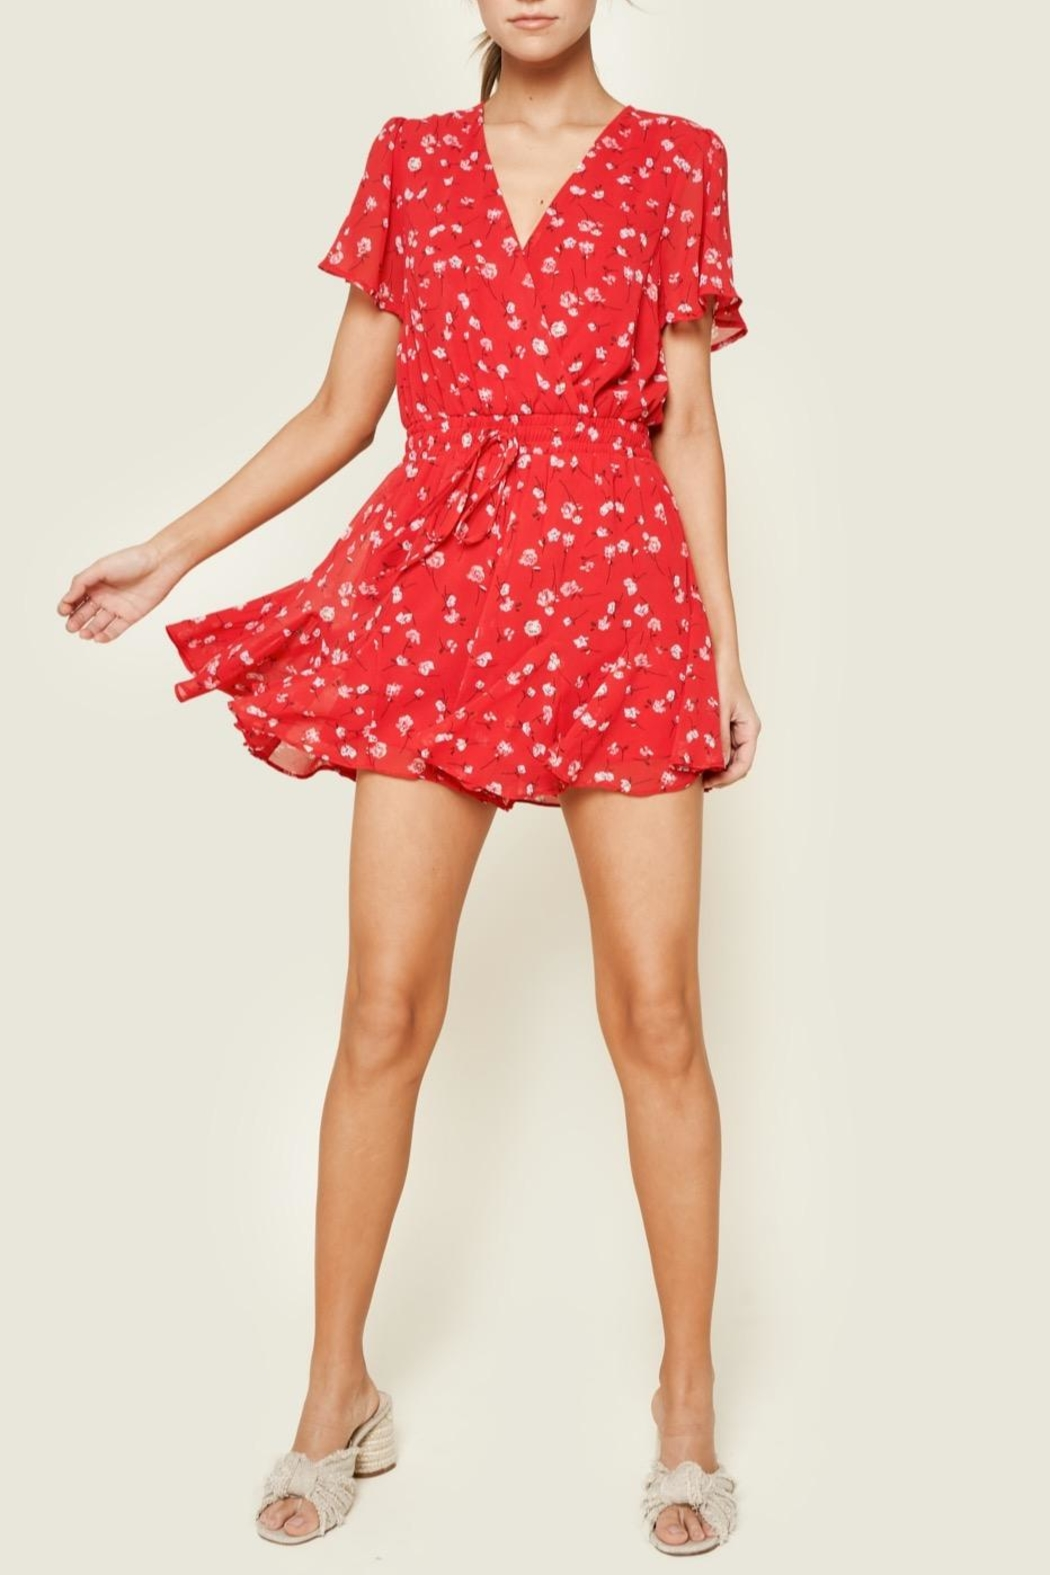 Sugarlips Red Floral Romper - Front Full Image